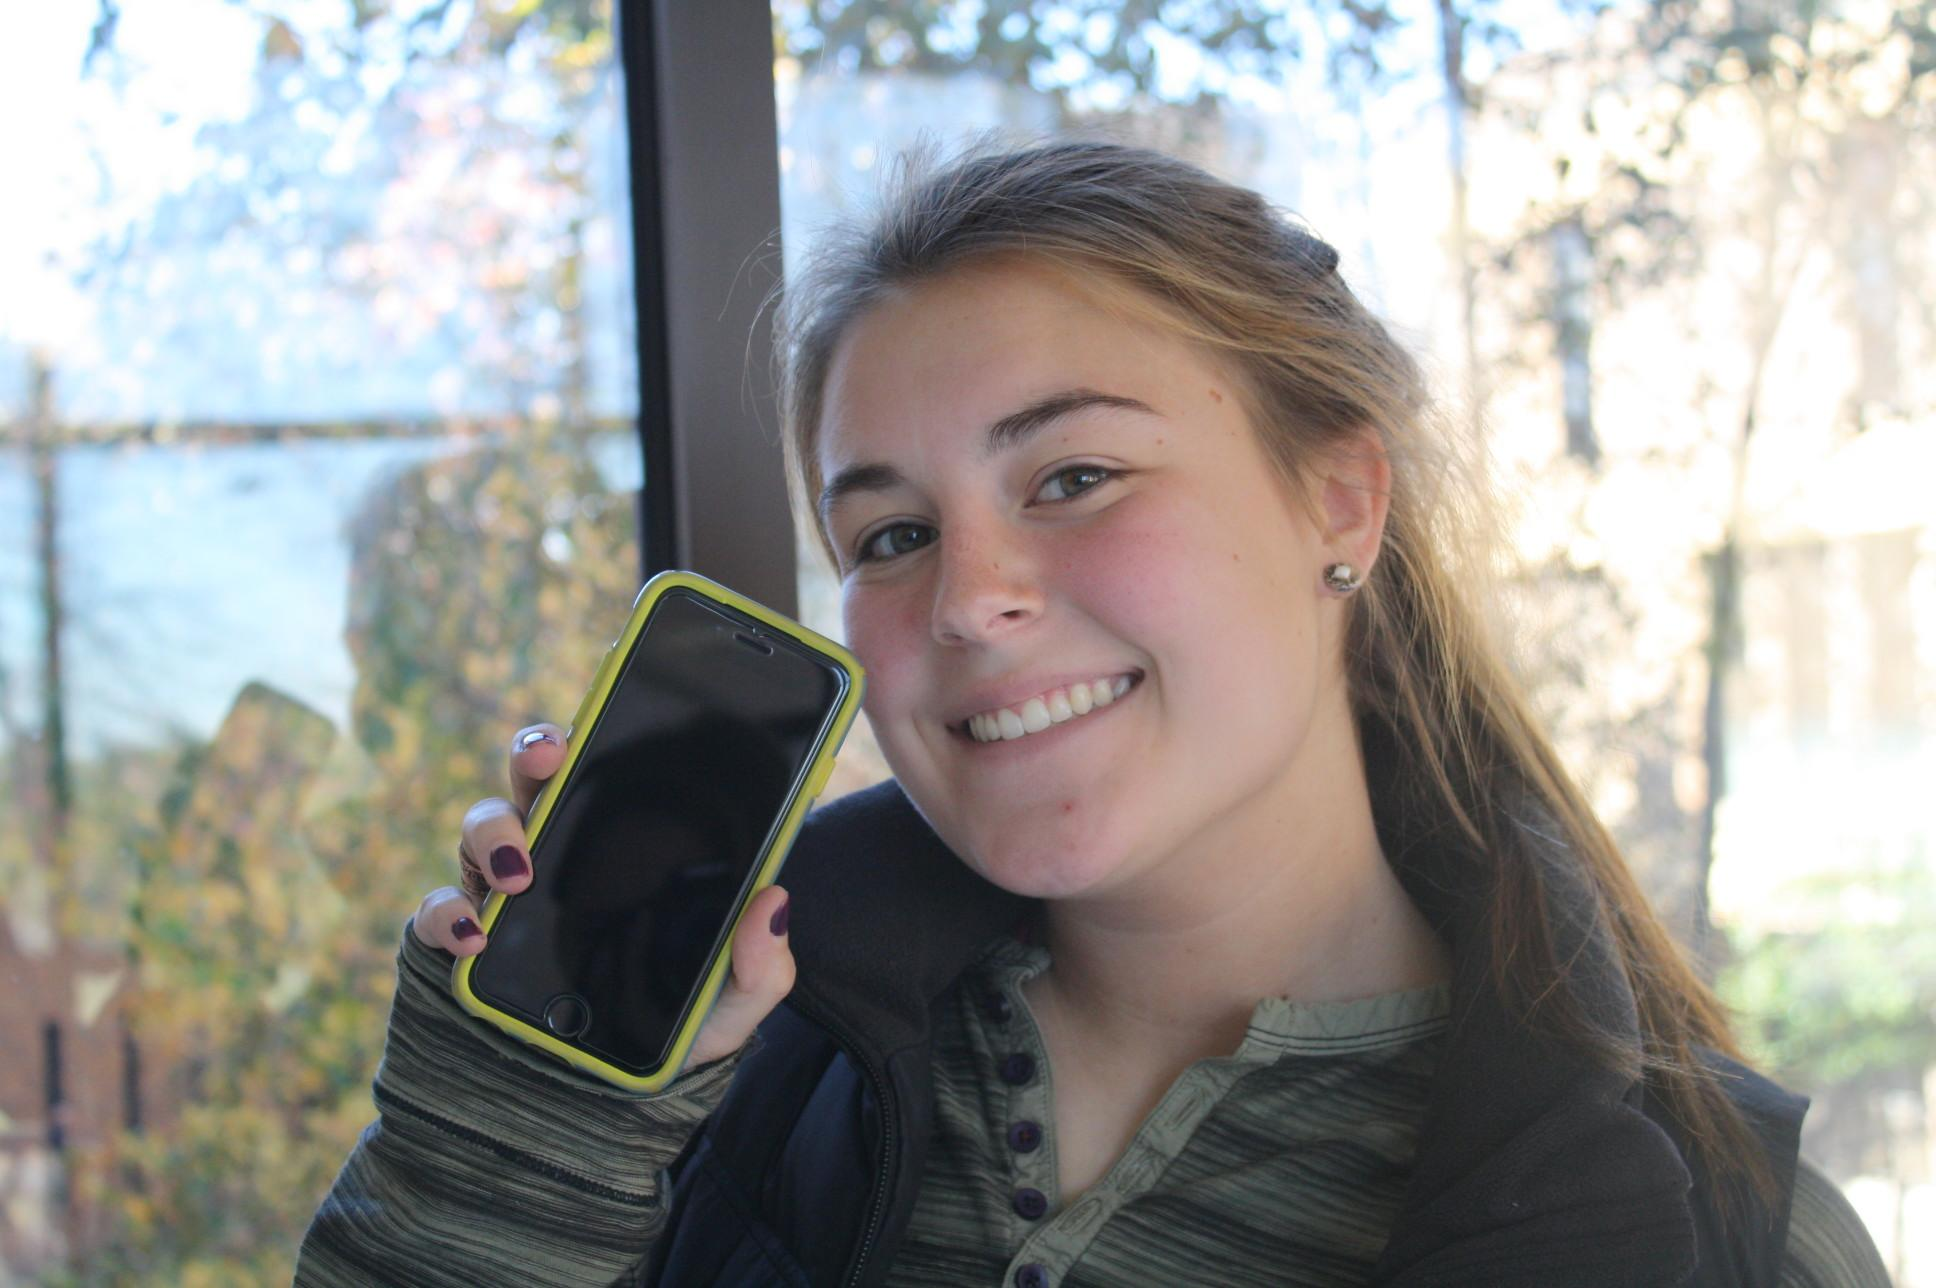 Maddie Rose holds up her new iPhone 6S.